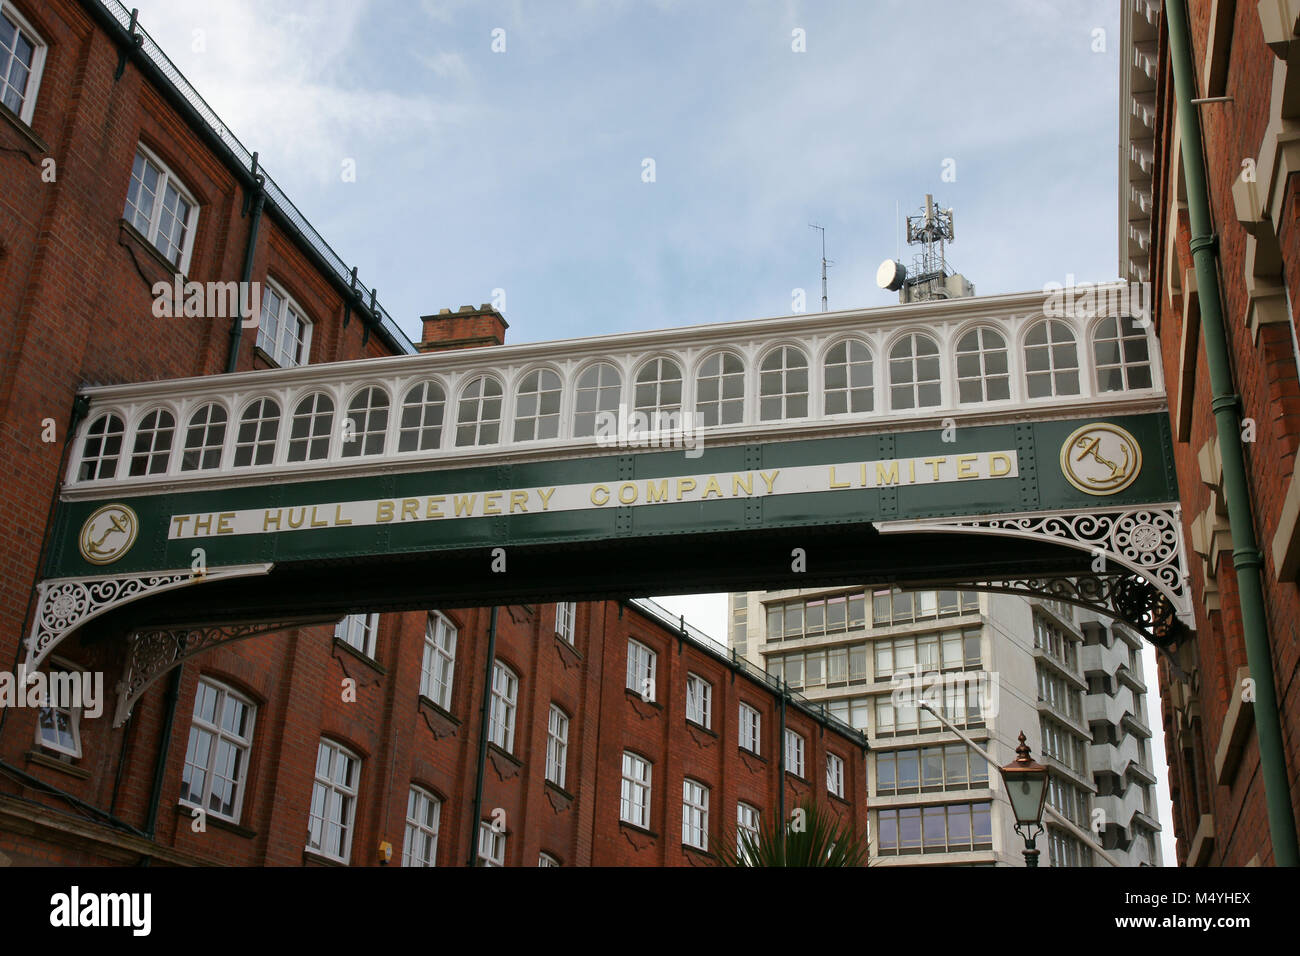 Hull Brewery Company Limited,Silvester Street, Kingston Upon Hull - Stock Image